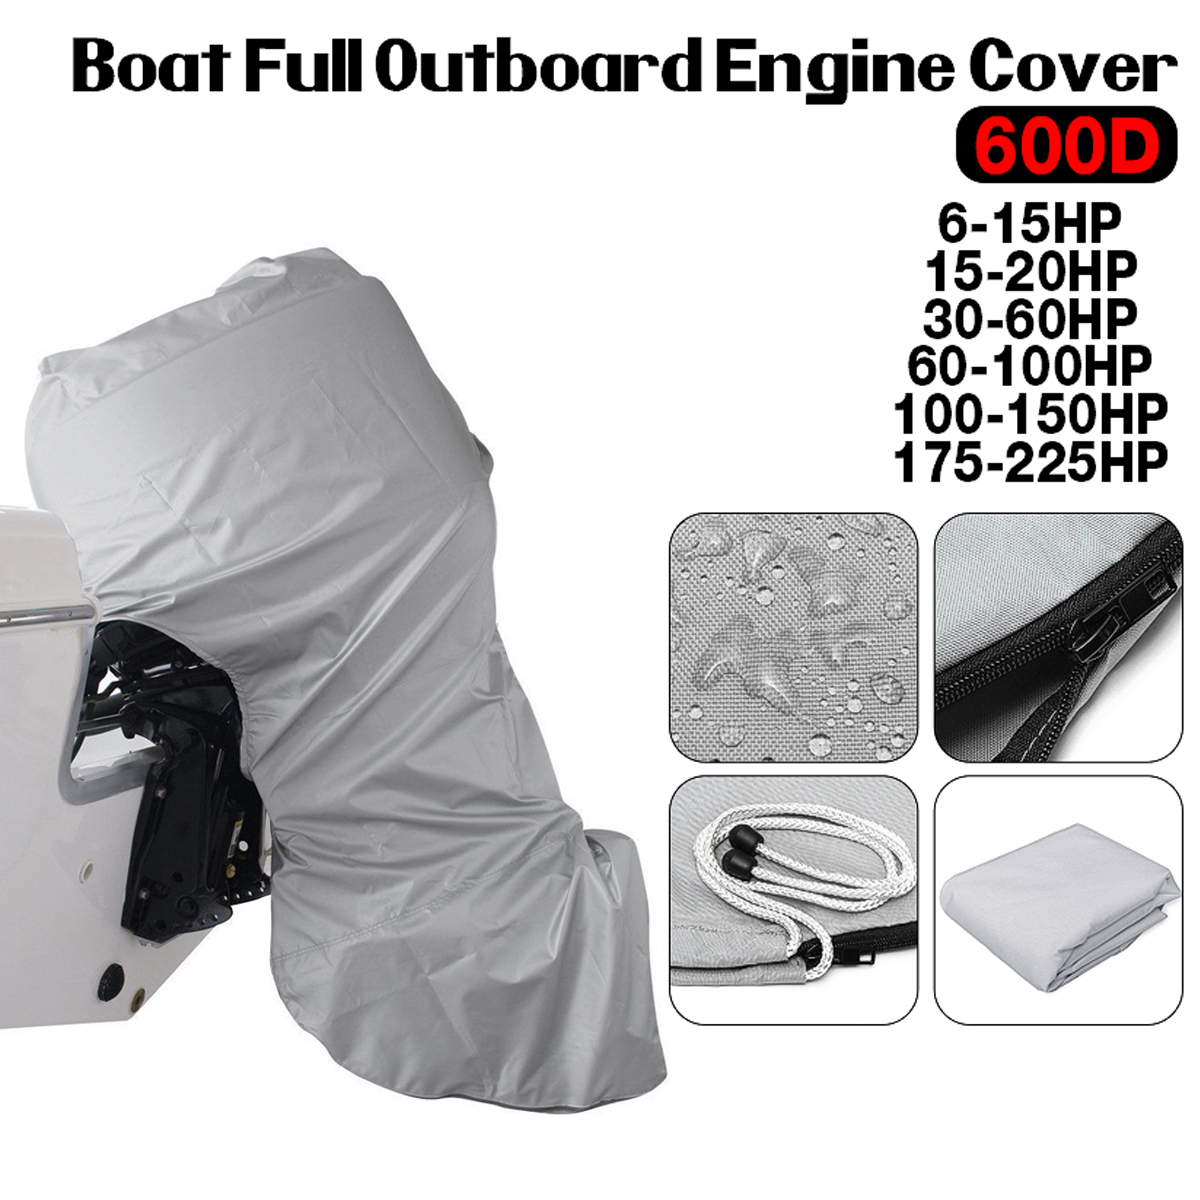 Fit 6-225HP Motor Full Outboard Boat Engine Cover 420D Black Waterproof US